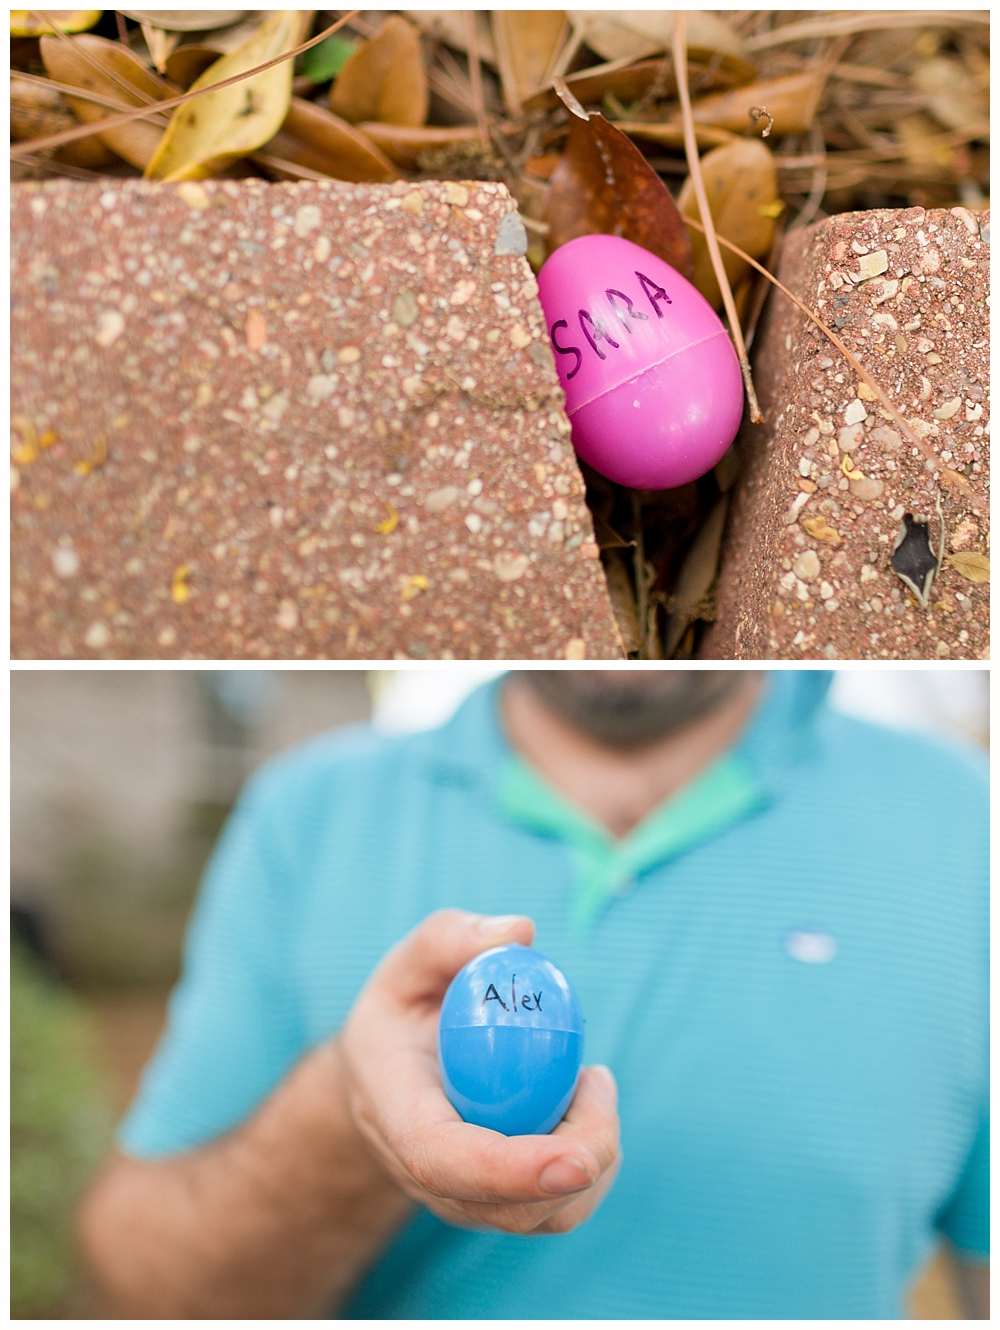 Easter Egg Hunt with names on eggs